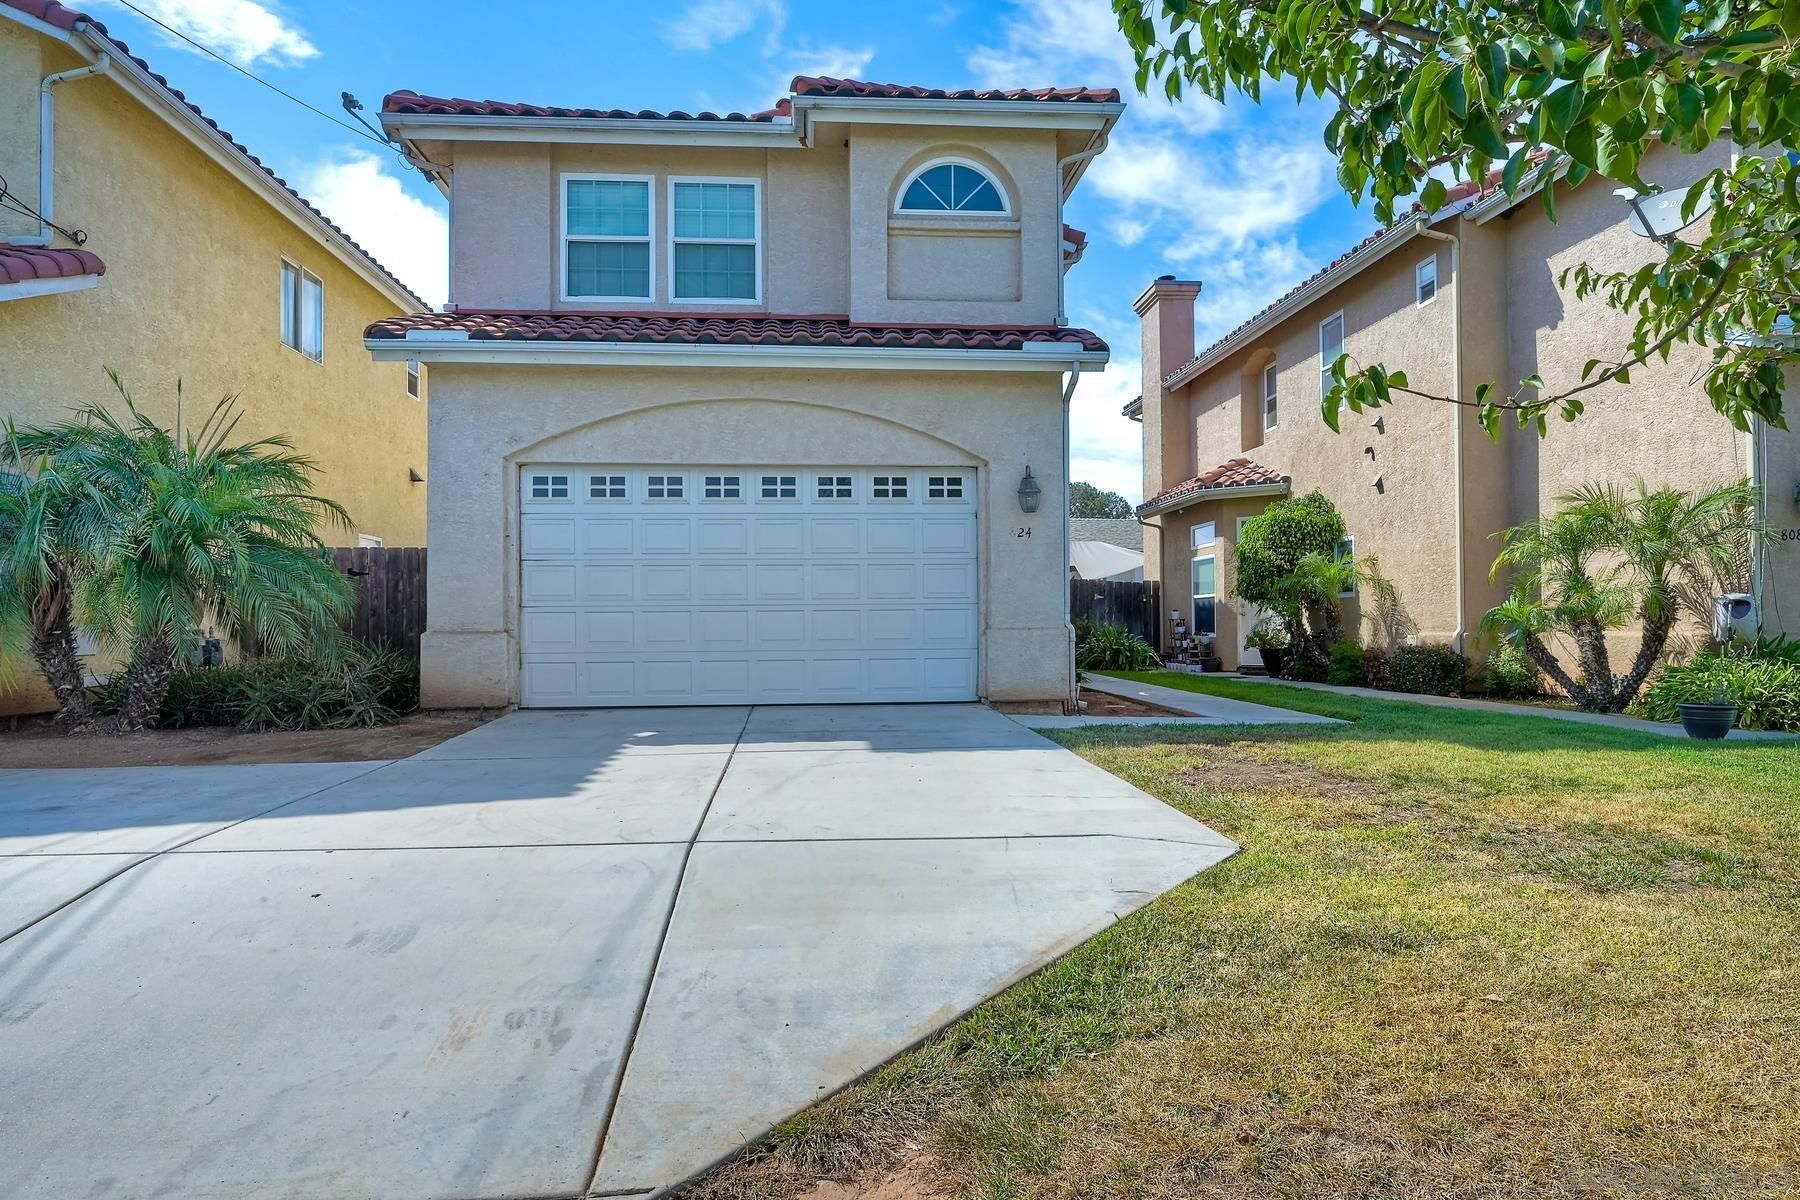 Main Photo: SAN DIEGO House for sale : 4 bedrooms : 824 18Th St